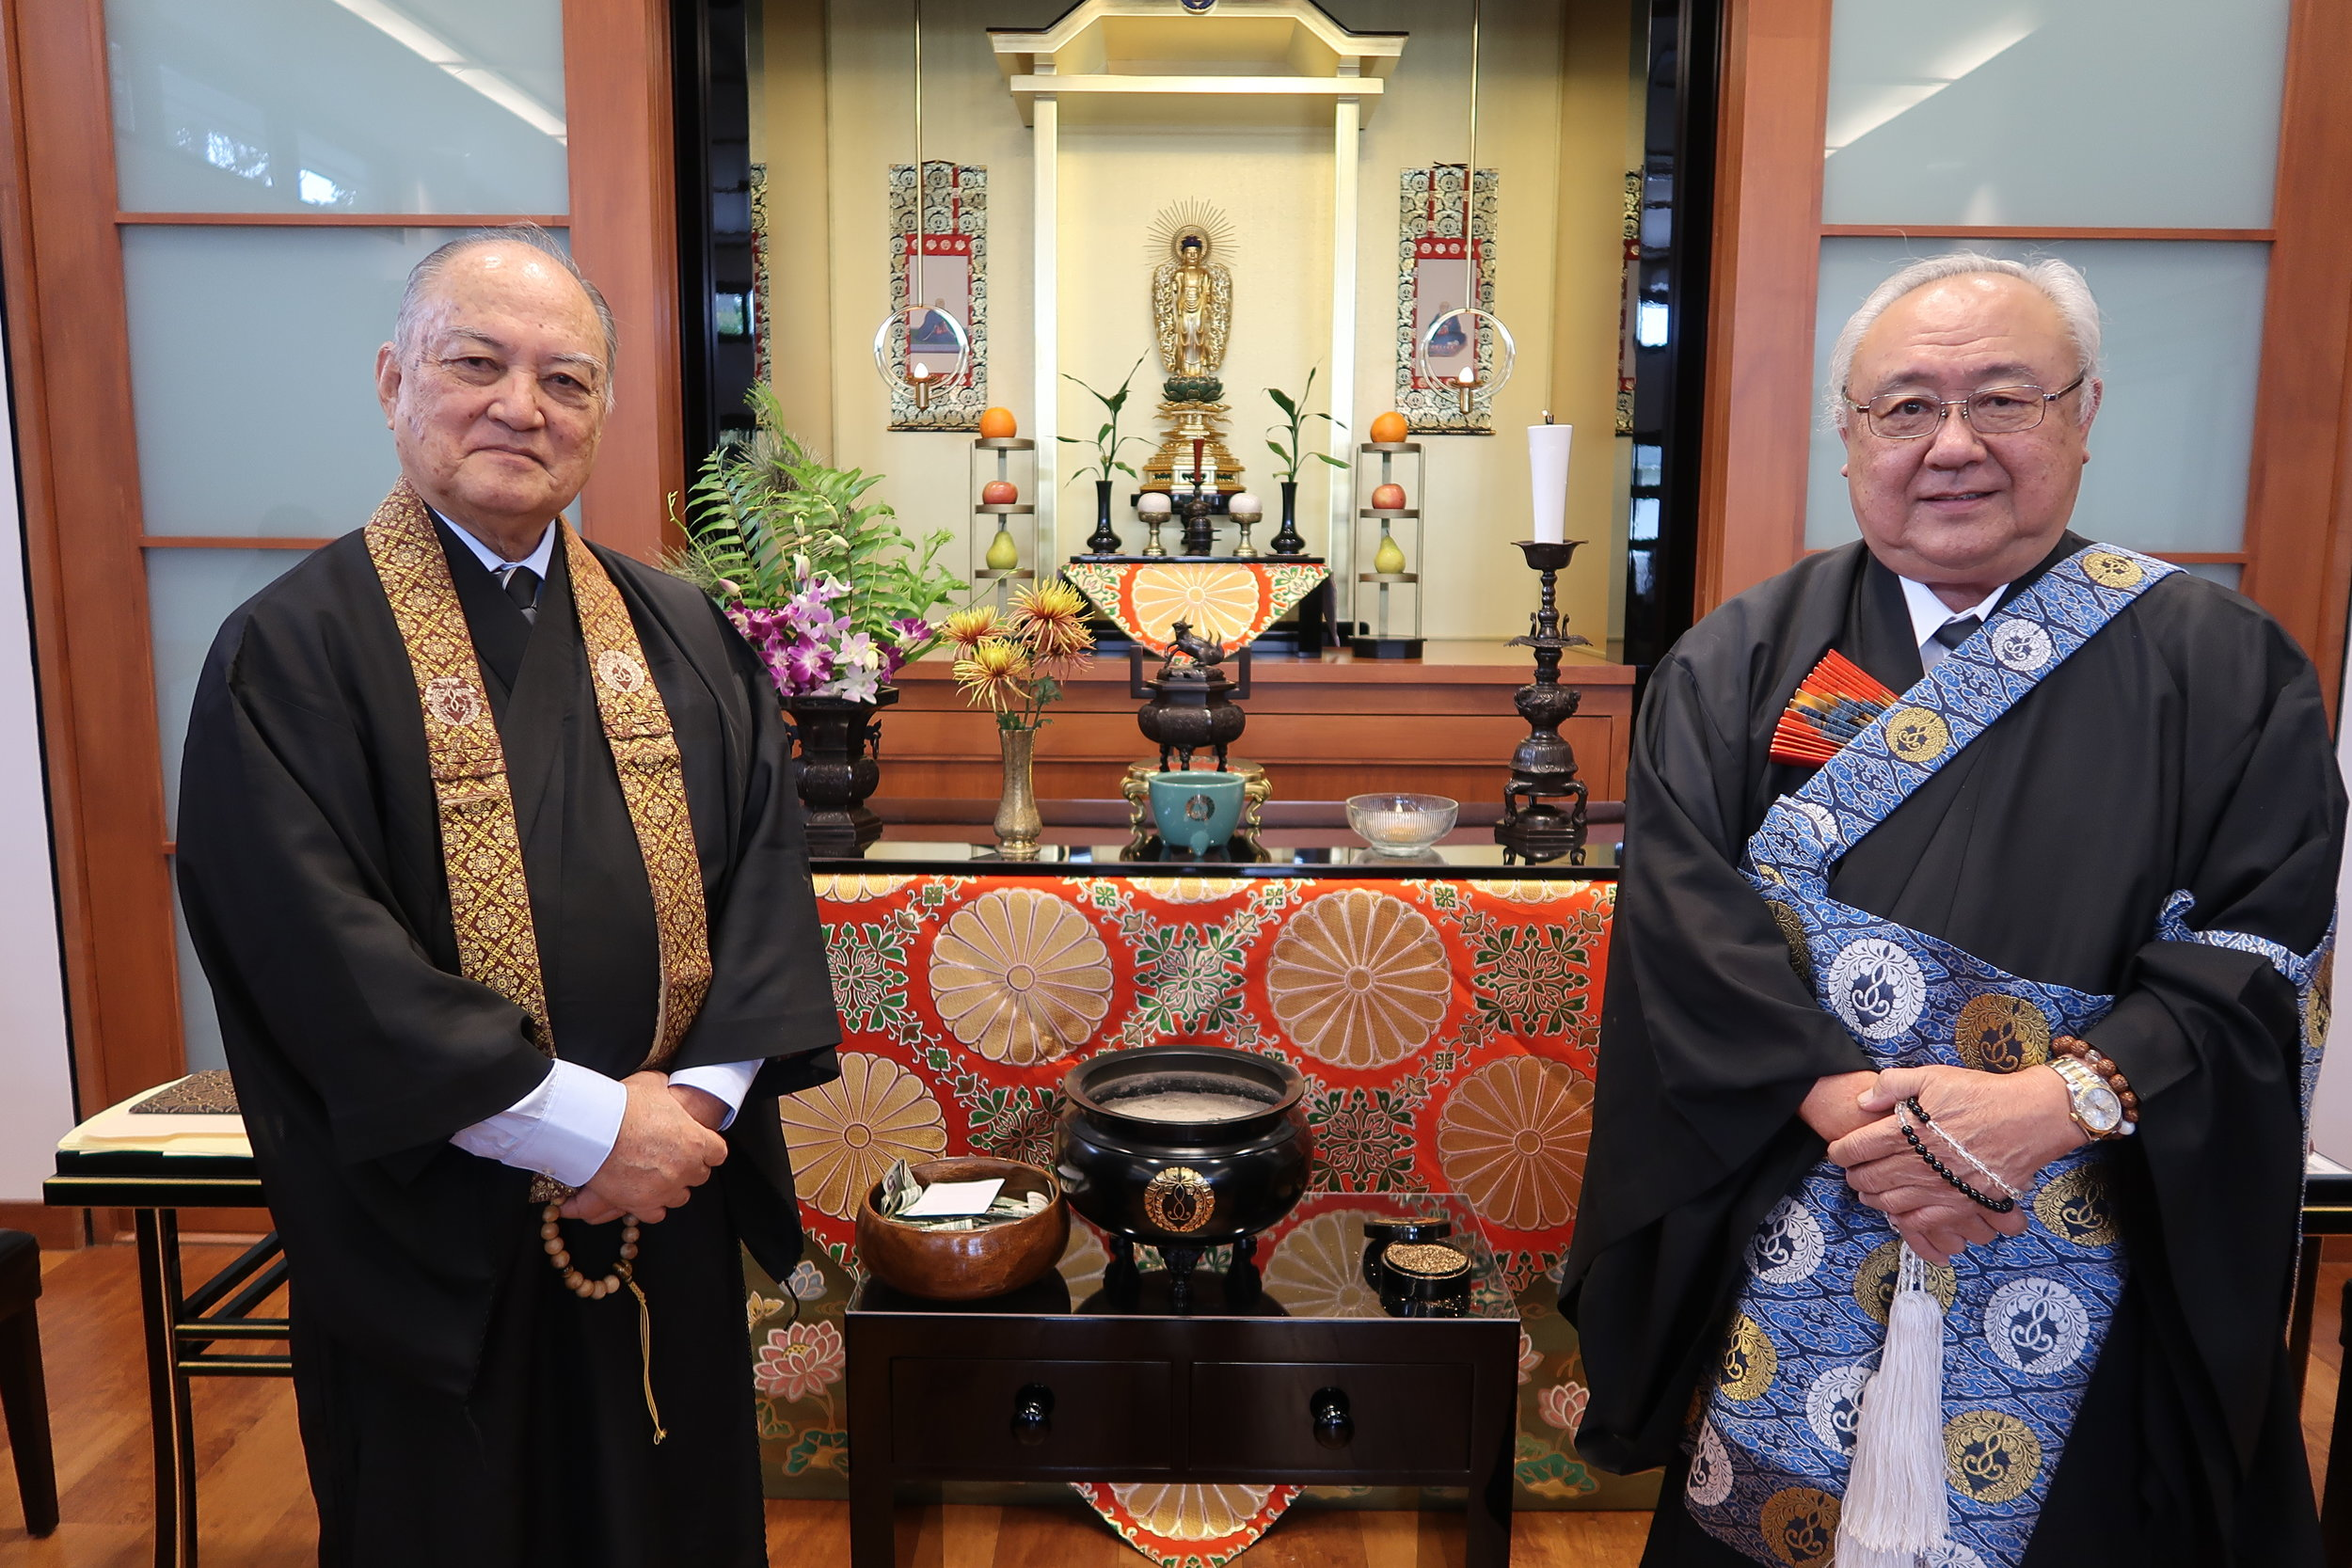 Hoonko Service   Rev. Thomas Okano   Read More